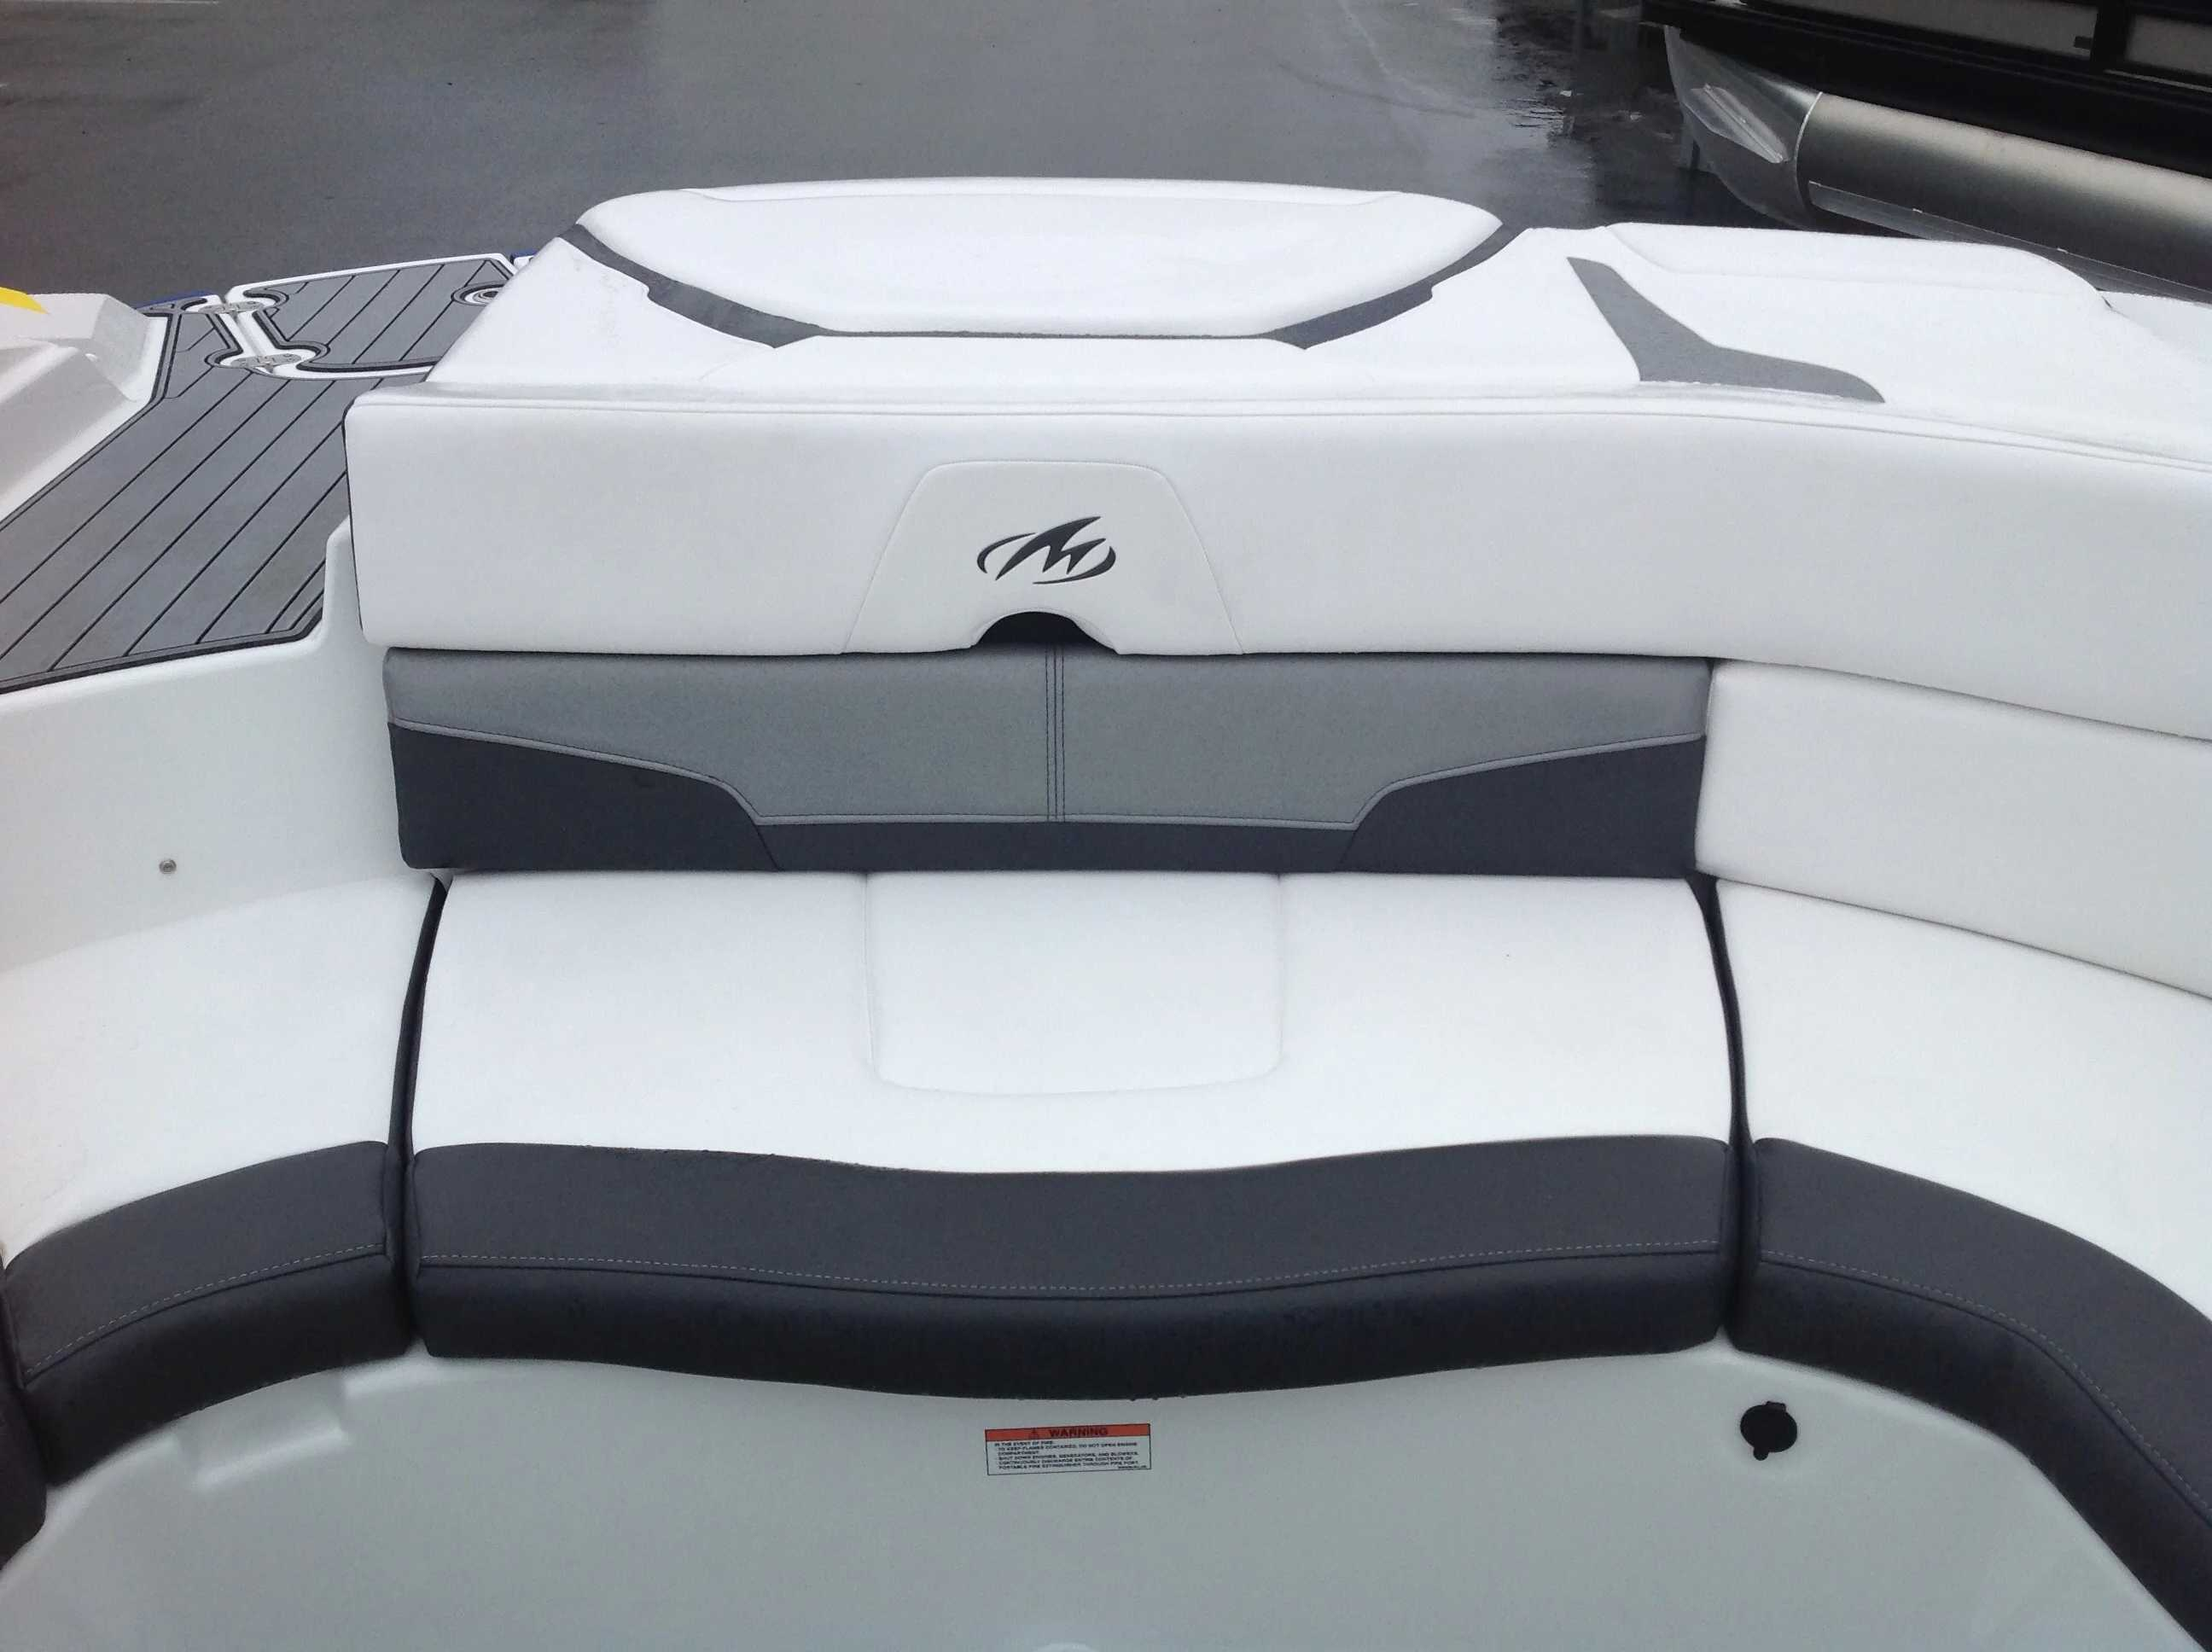 2022 Monterey boat for sale, model of the boat is 224FS & Image # 9 of 12